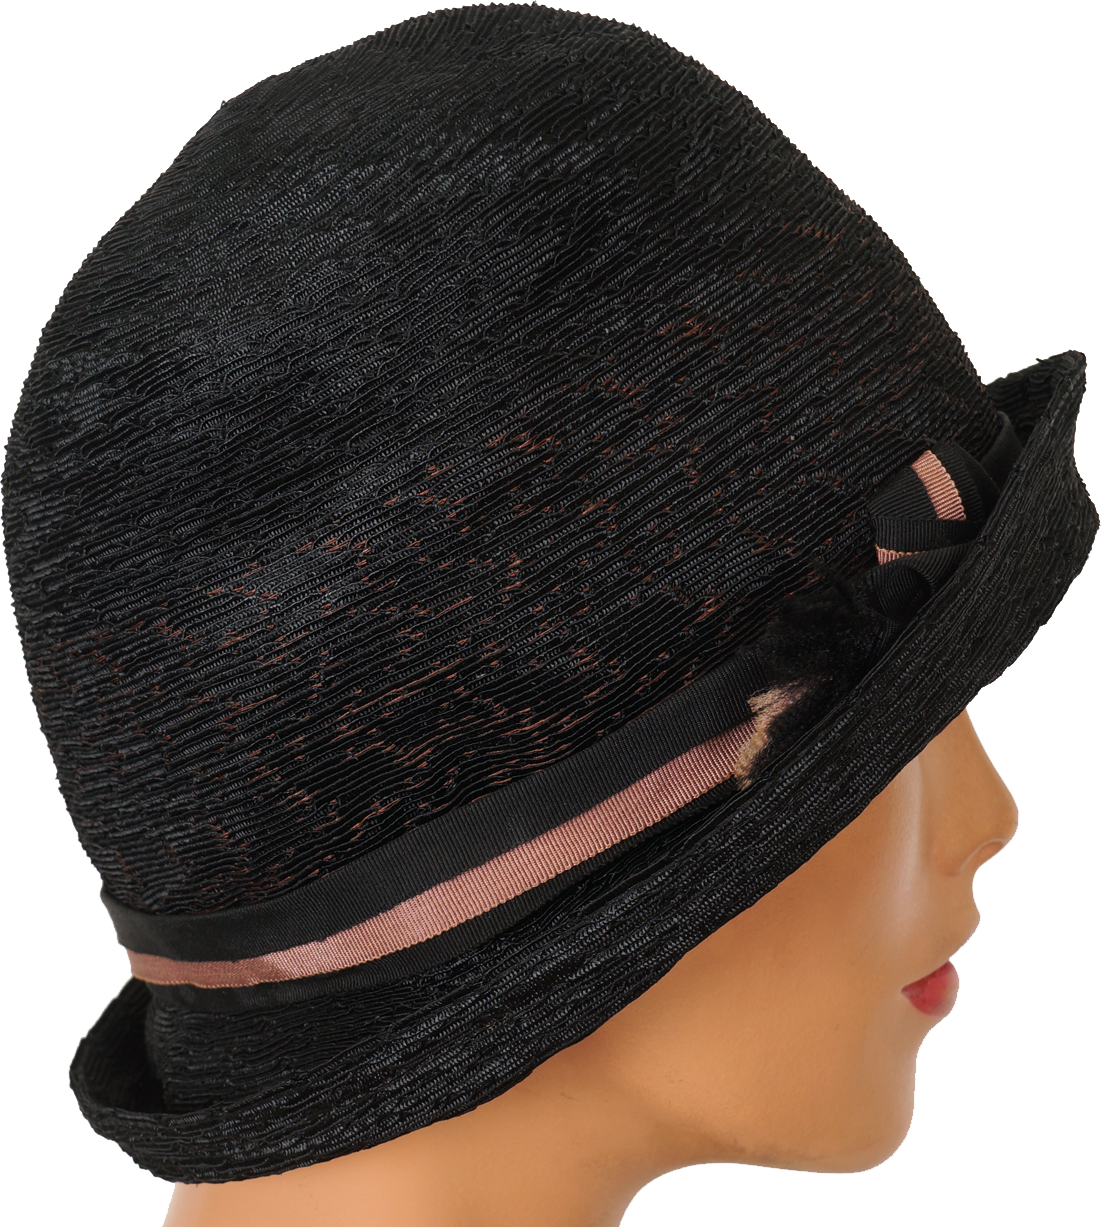 Flappers drawing cloche hat. S united hatters